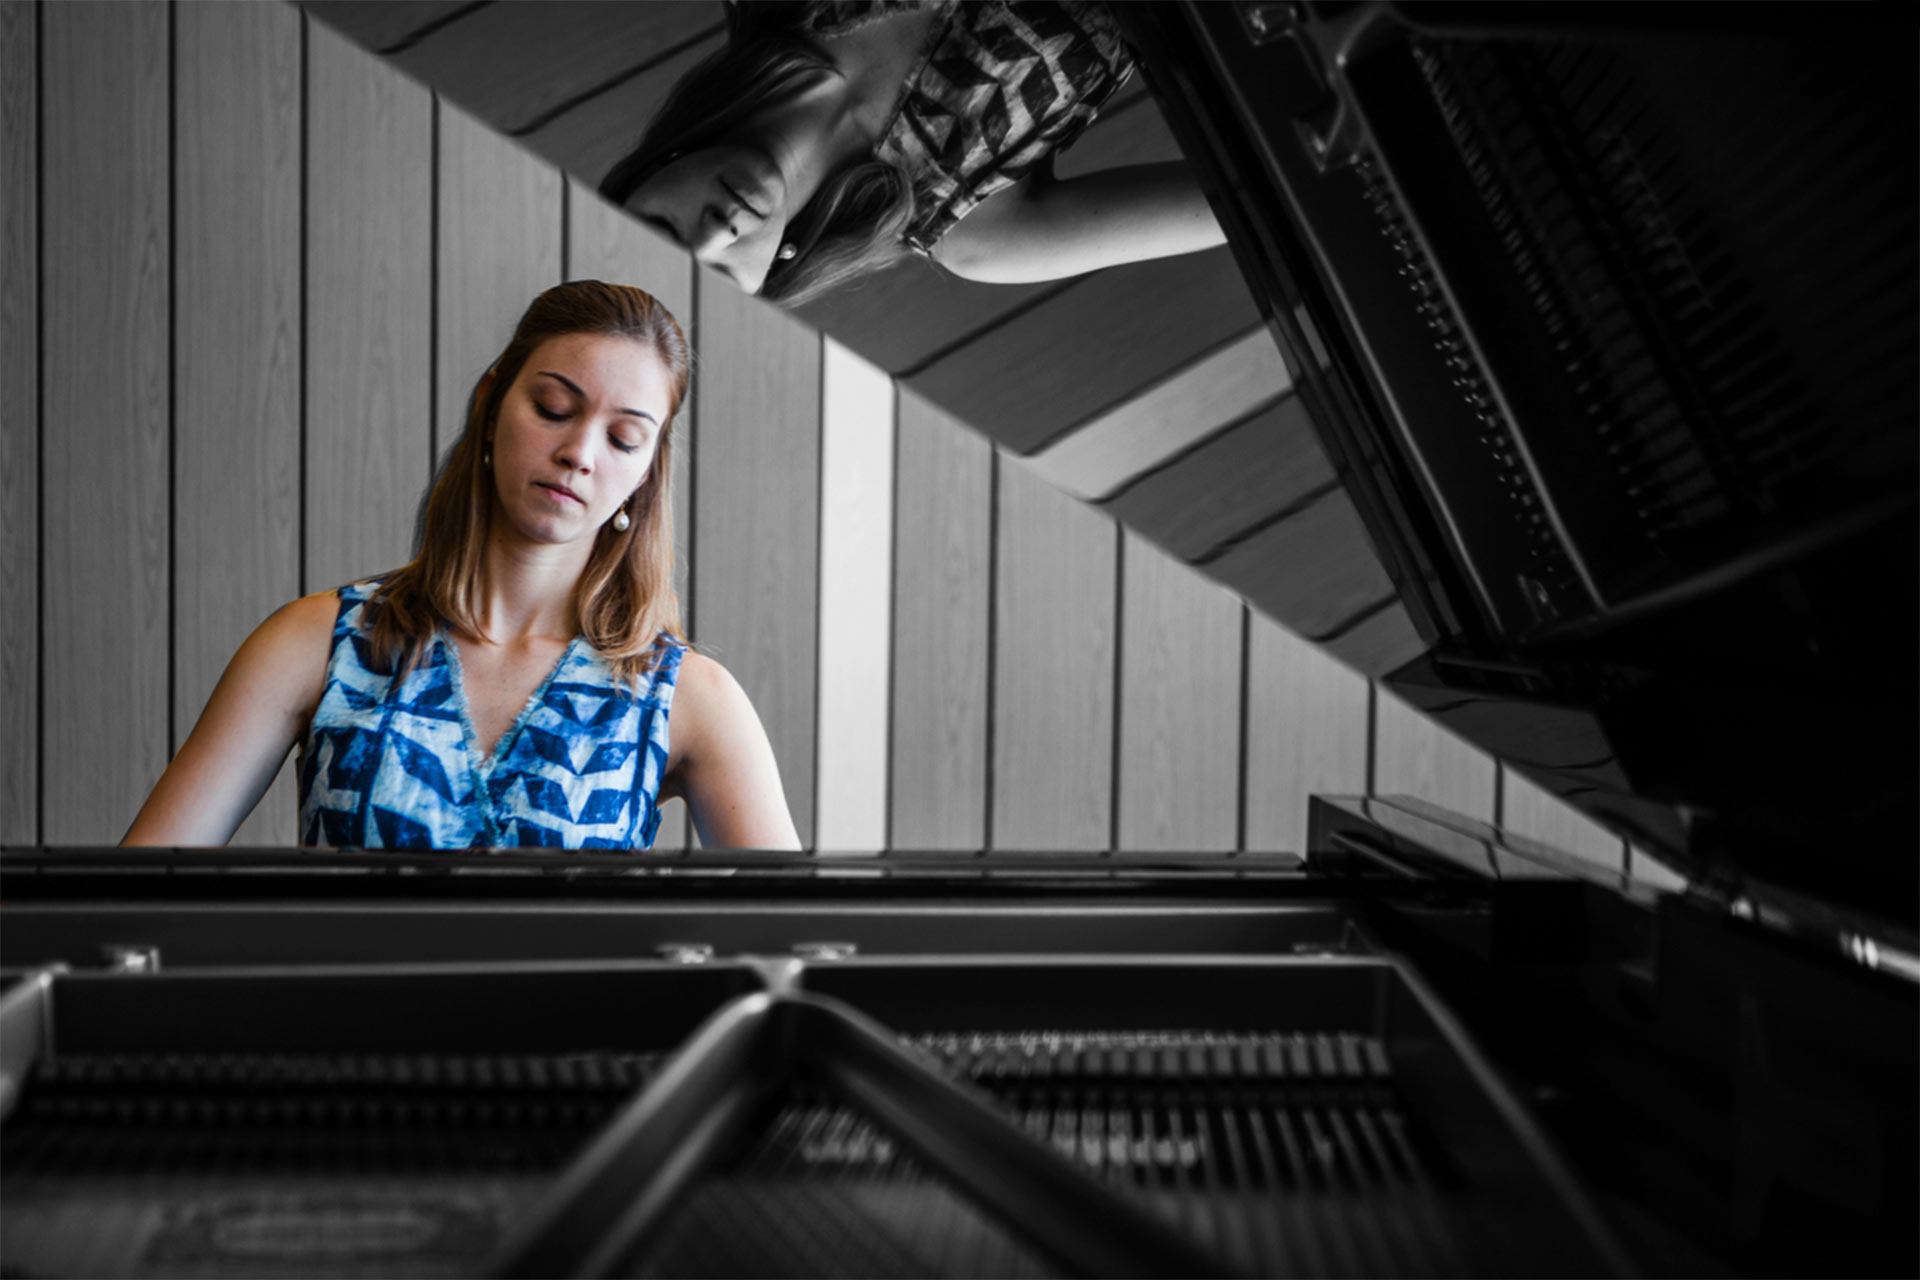 Bendada Music Festival founder Inês Andrade performs on a black grand piano.Photo taken from behind the piano looking at the performer.